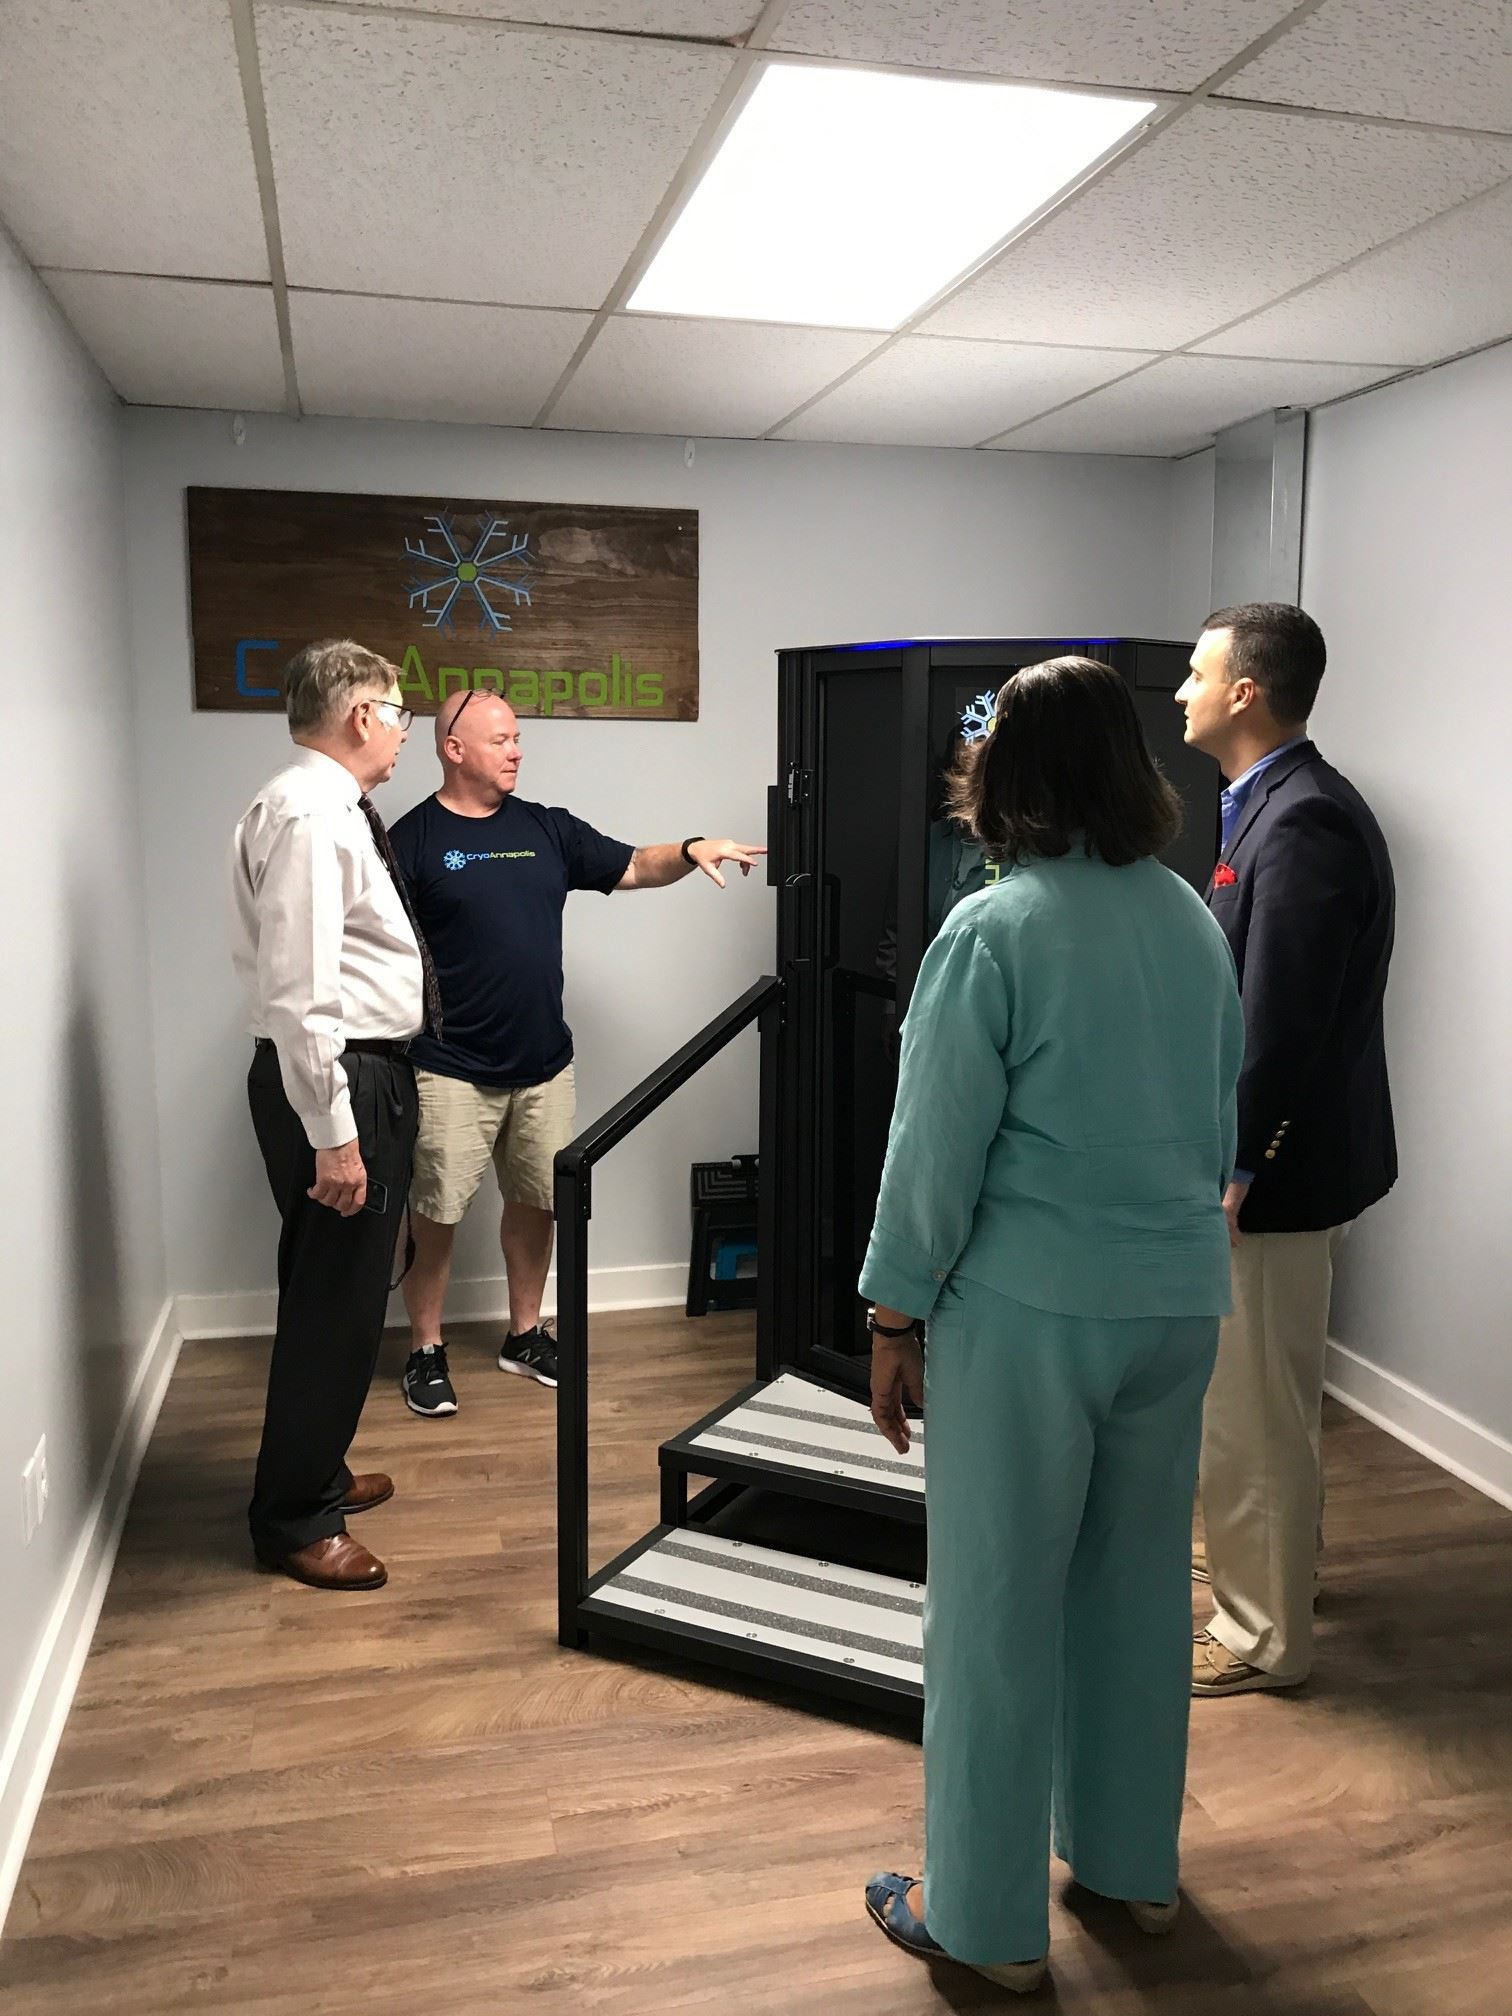 Bob Agee, Alderwoman Pindell-Charles, and Mayor Pantelides learn about machines at CyroAnnapolis